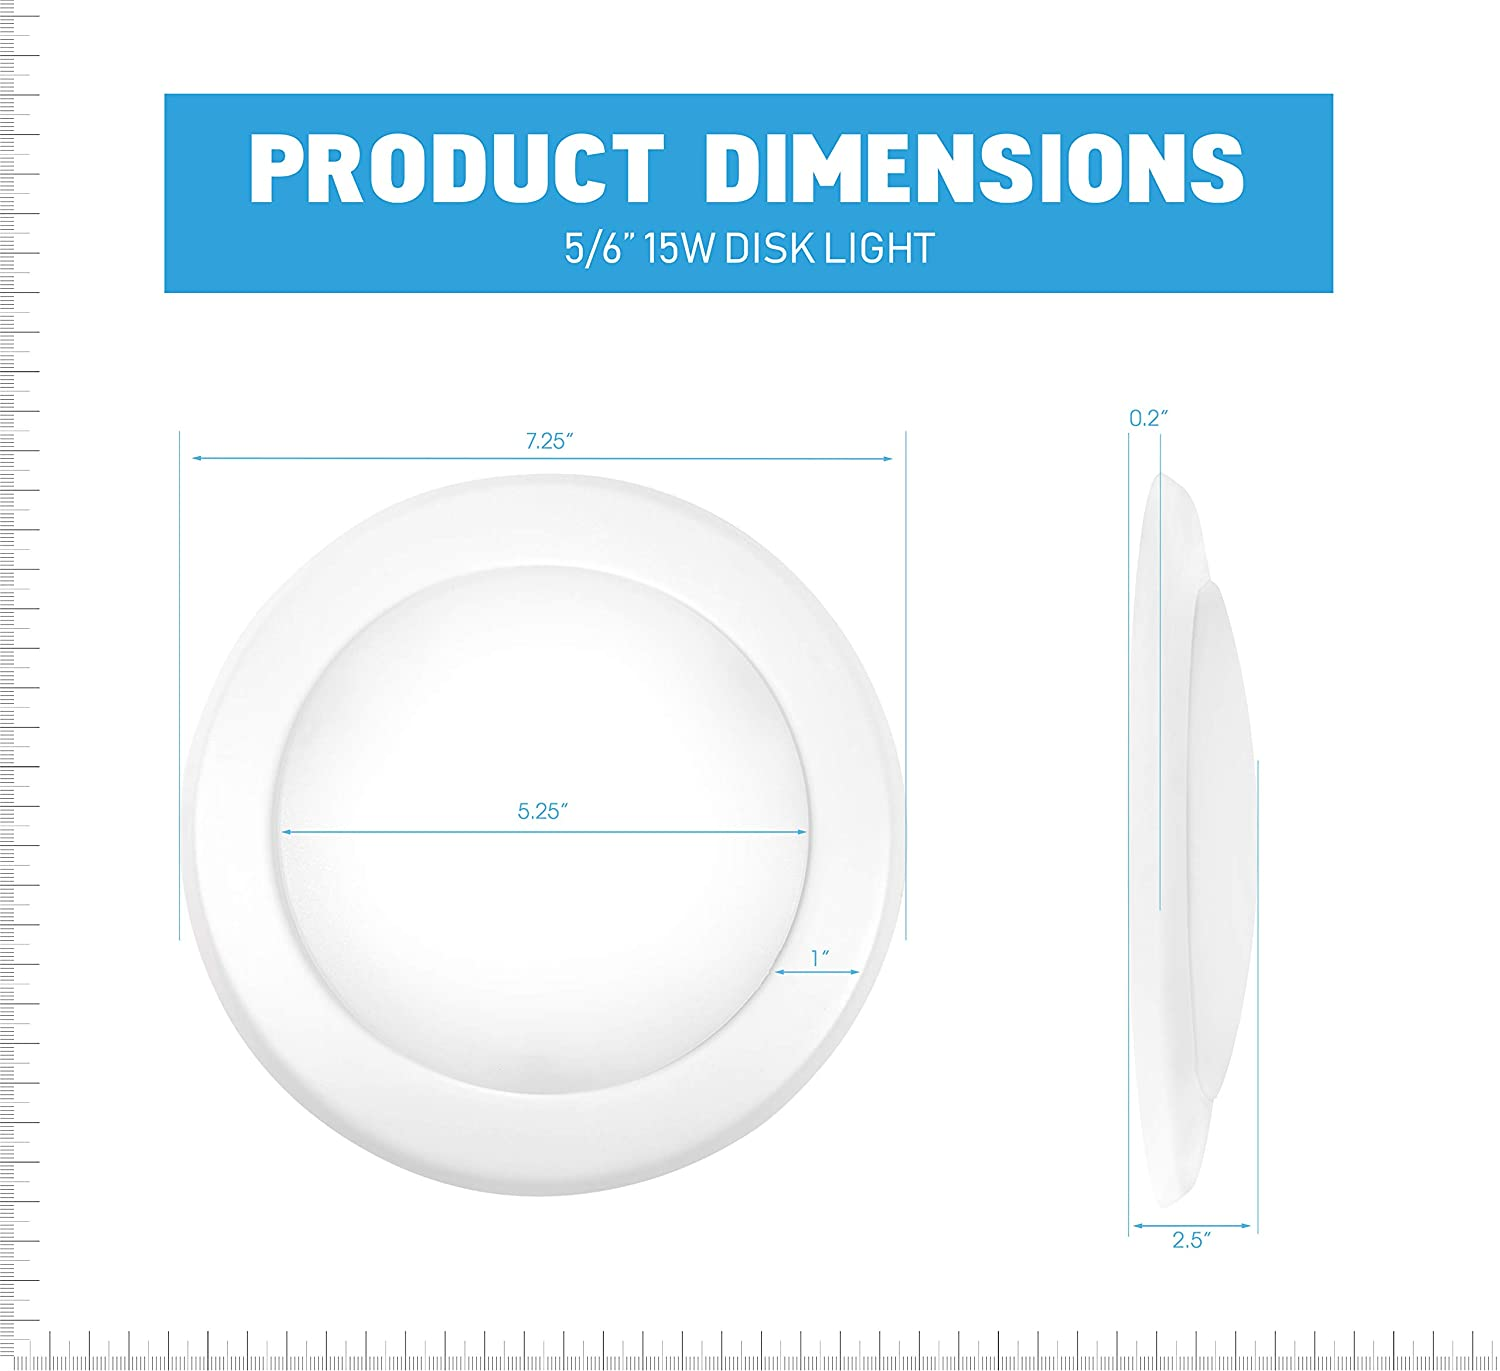 Parmida 12 Pack 5 6 Dimmable Led Disk Light Flush Mount Recessed Wiring Diagram Of Triac Dimming Downlight Connecting Over 1 Retrofit Ceiling Lights 15w 120w Replacement 3000k Soft White Energy Star